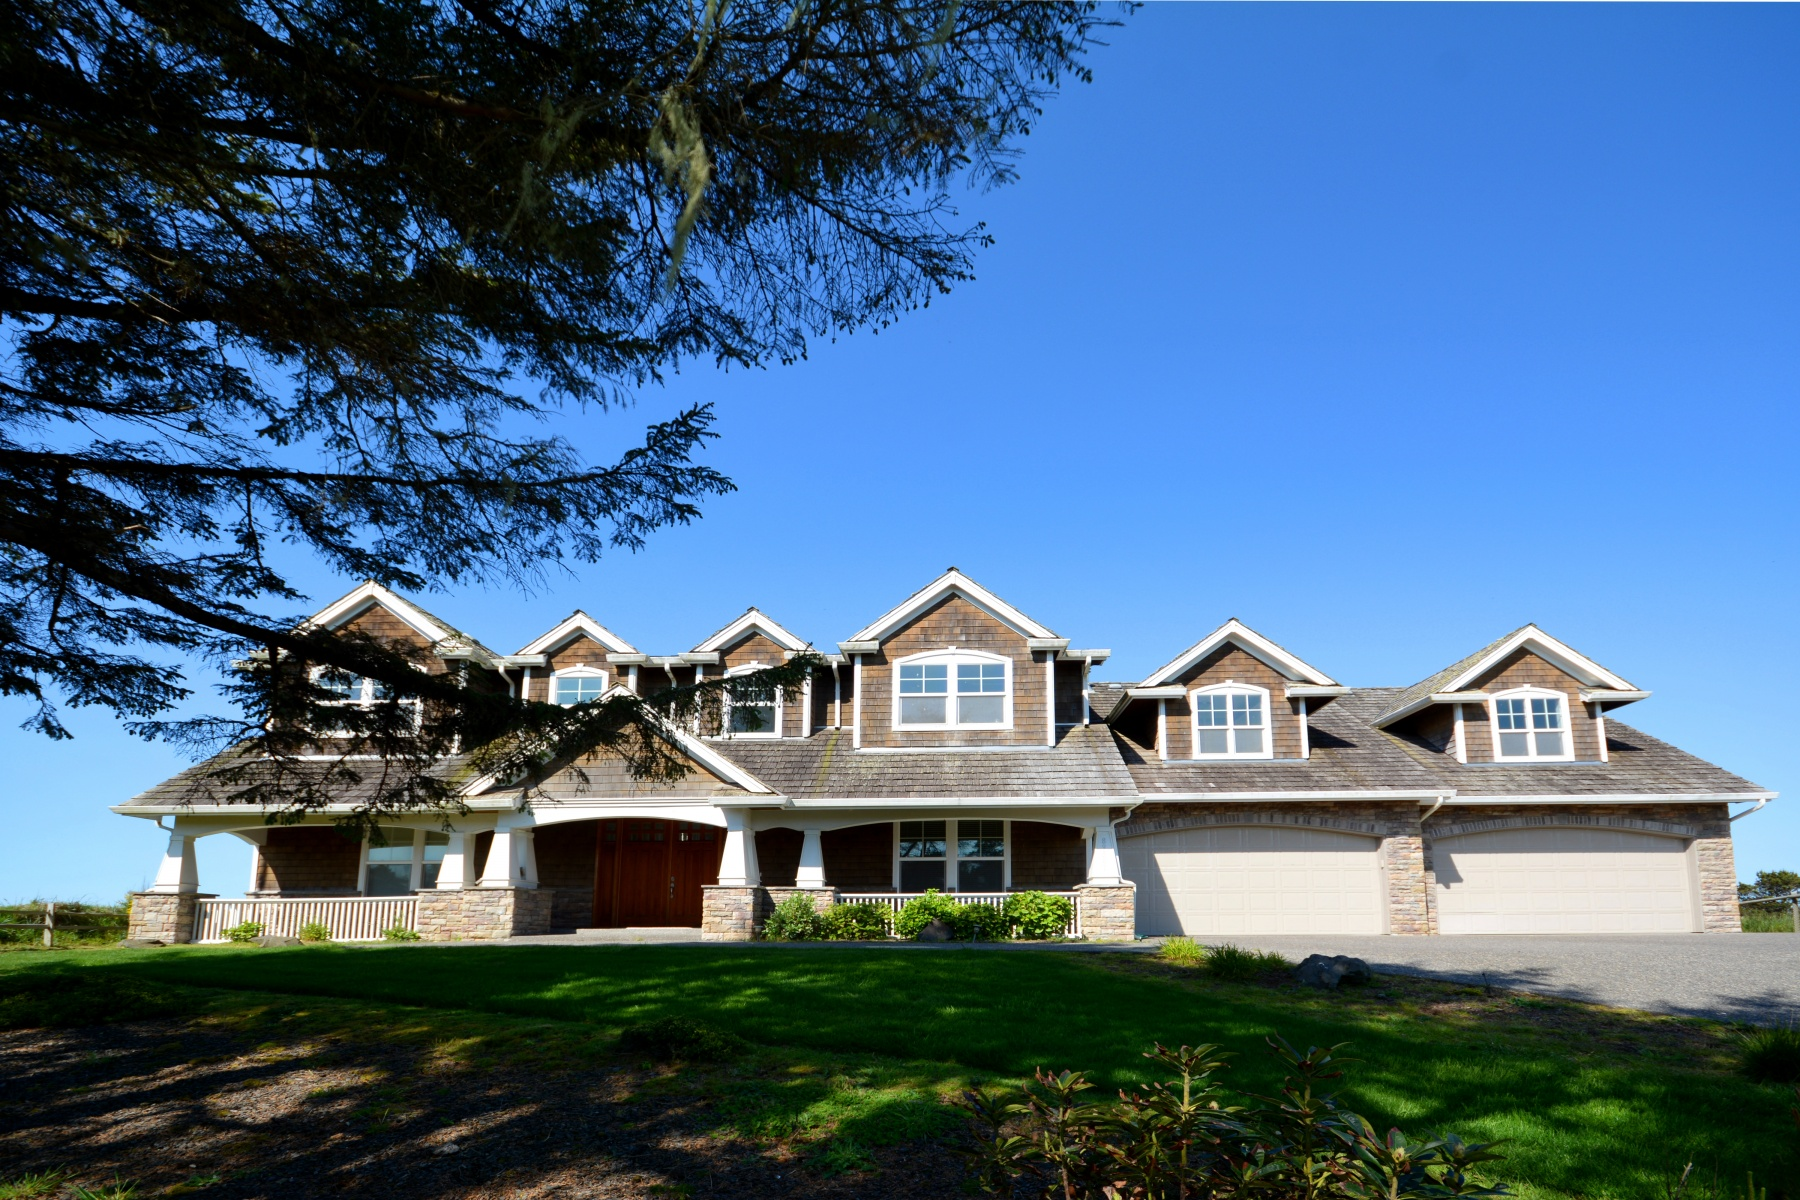 Single Family Home for Sale at 89301 Pinehurst RD, GEARHART, OR Seaside, Oregon 97138 United States